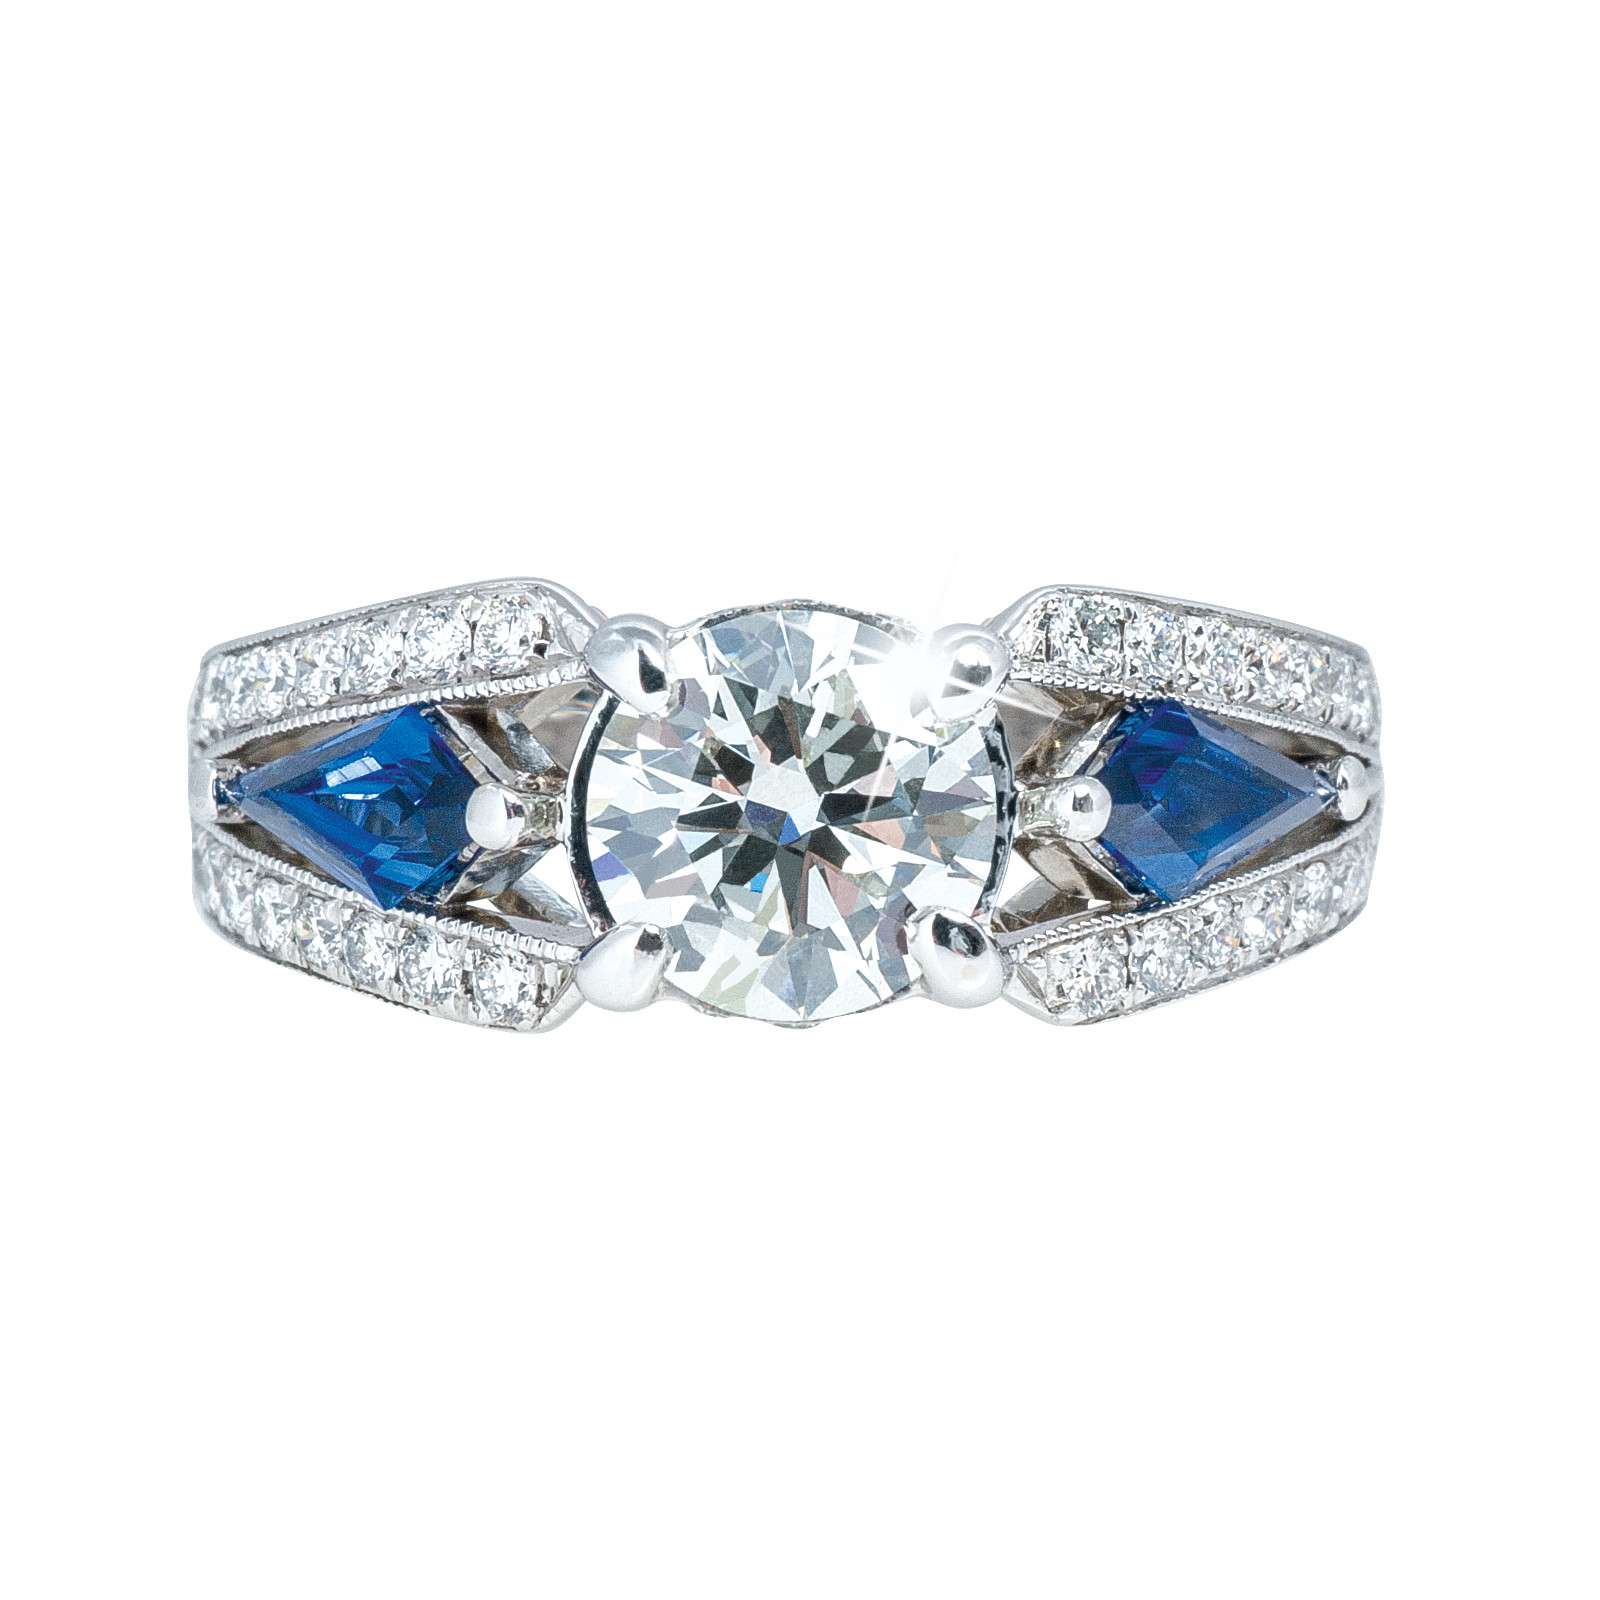 zales rings black regarding of diamond wedding engagement best leo